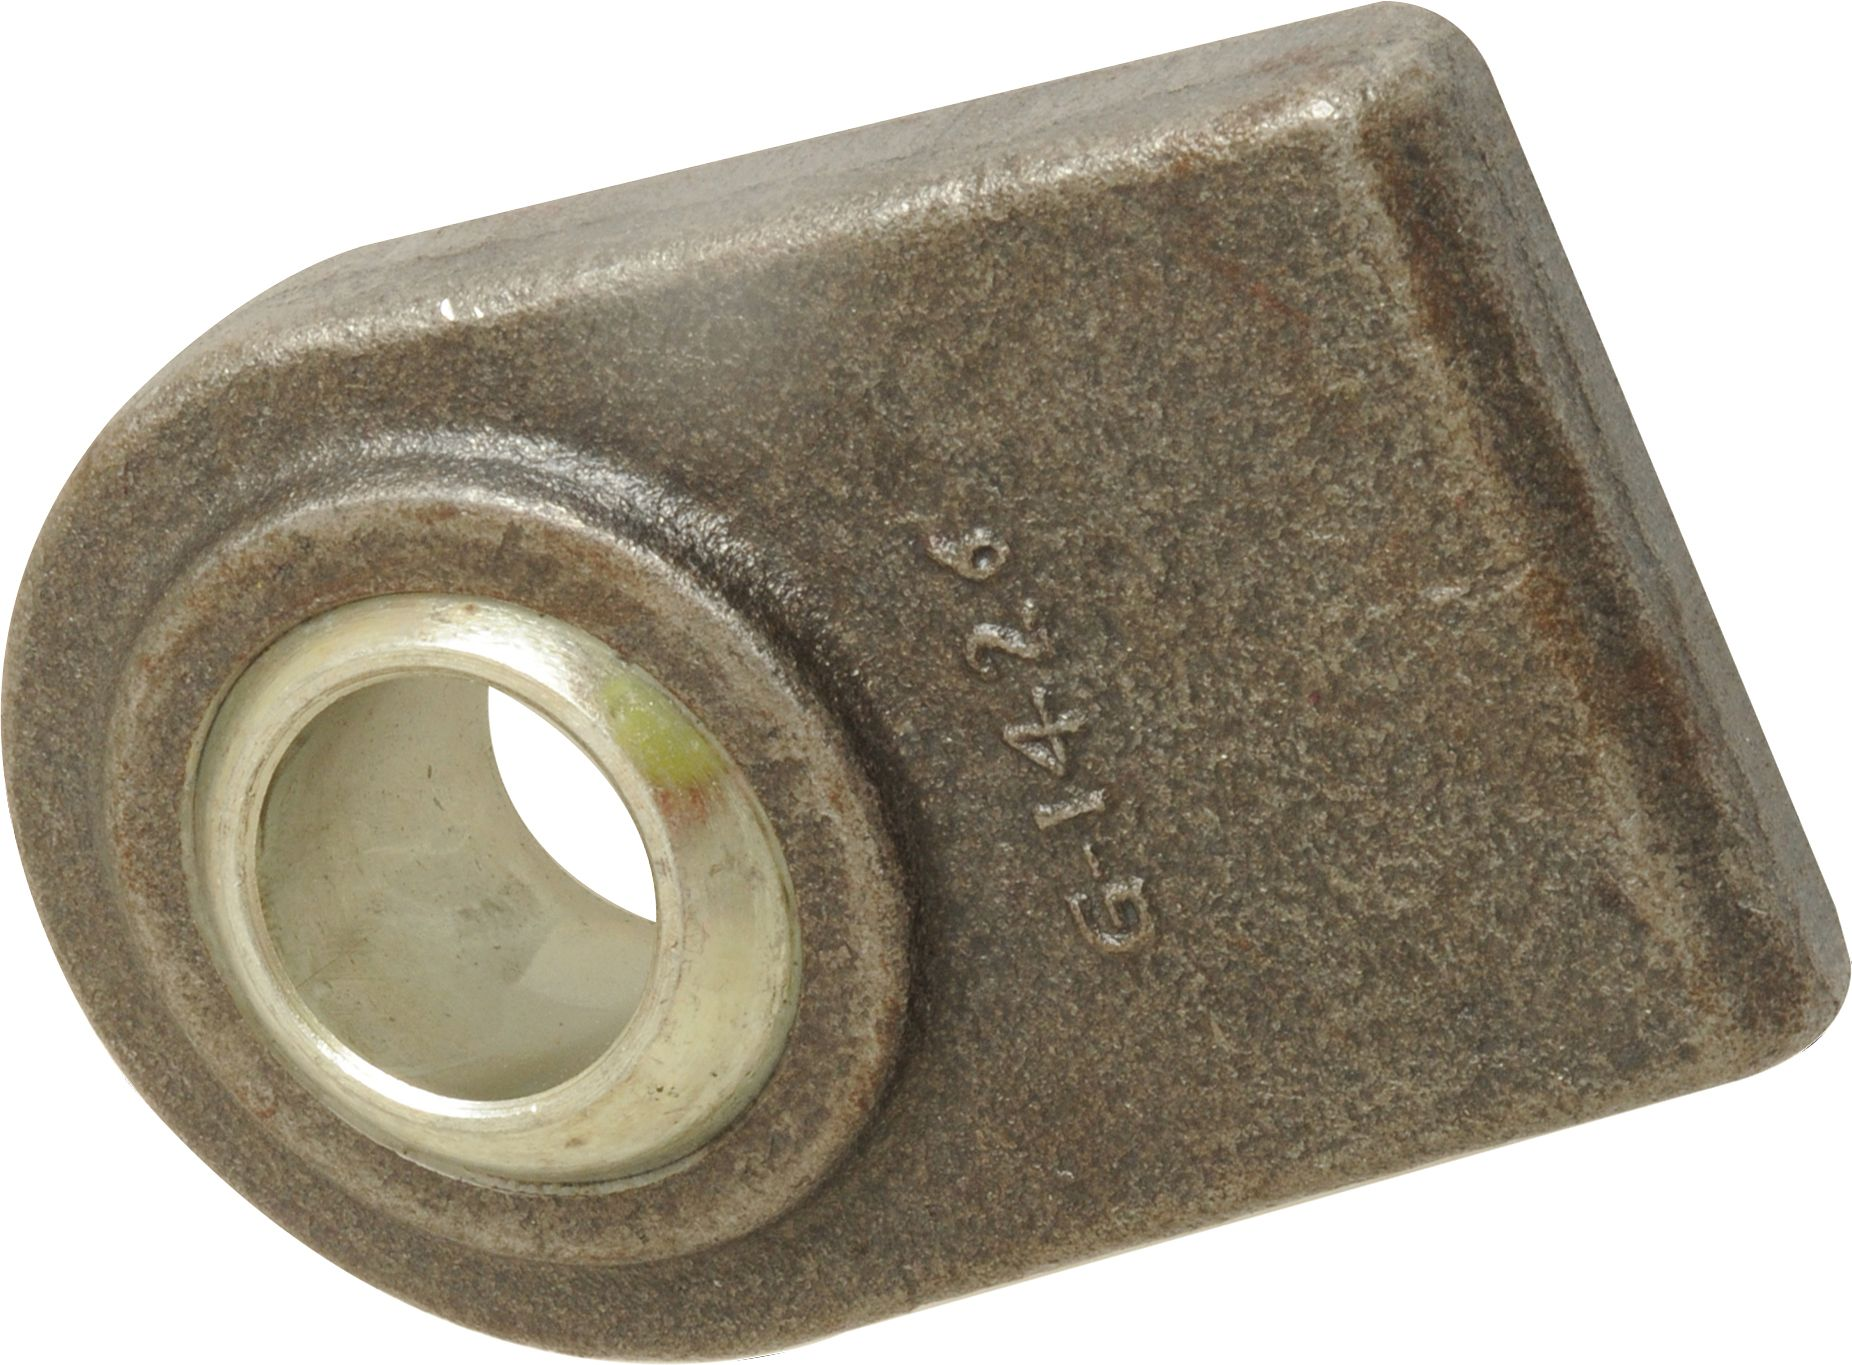 CASE IH LOWER LINK BALL END-CAT2 1342